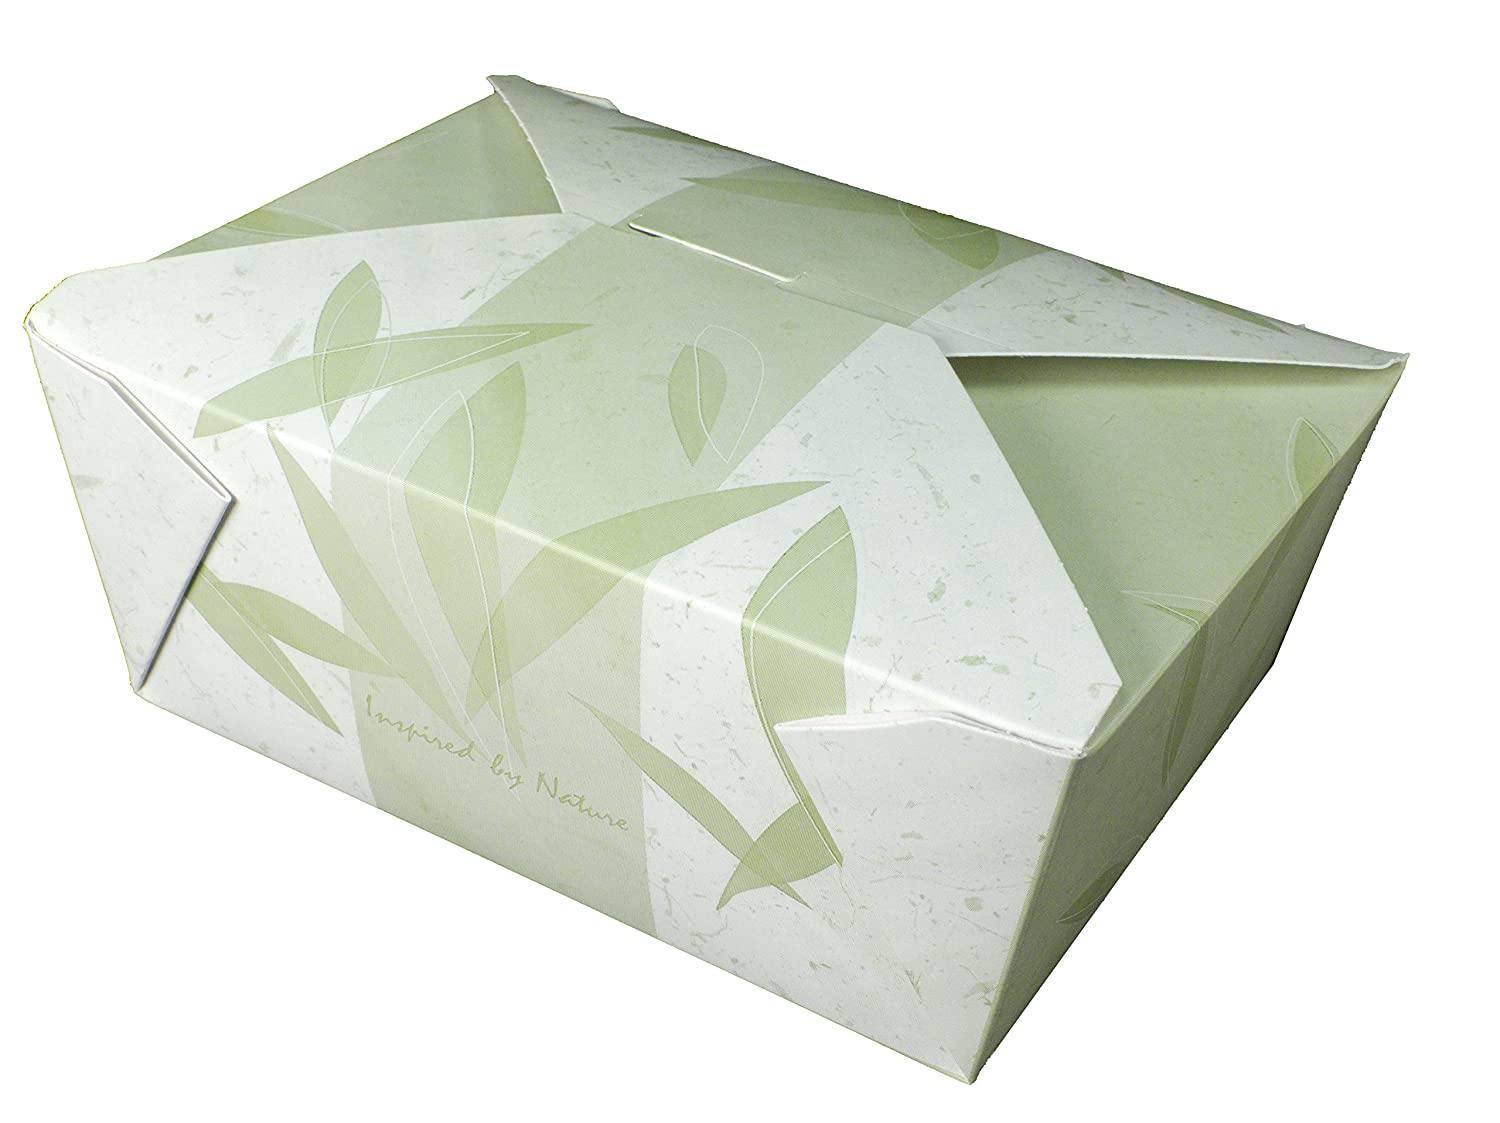 Fold-Pak Bio-Pak 04BPNATURM Inspired by Nature Print Paper Carry-Out/To-Go Container, 7-3/4